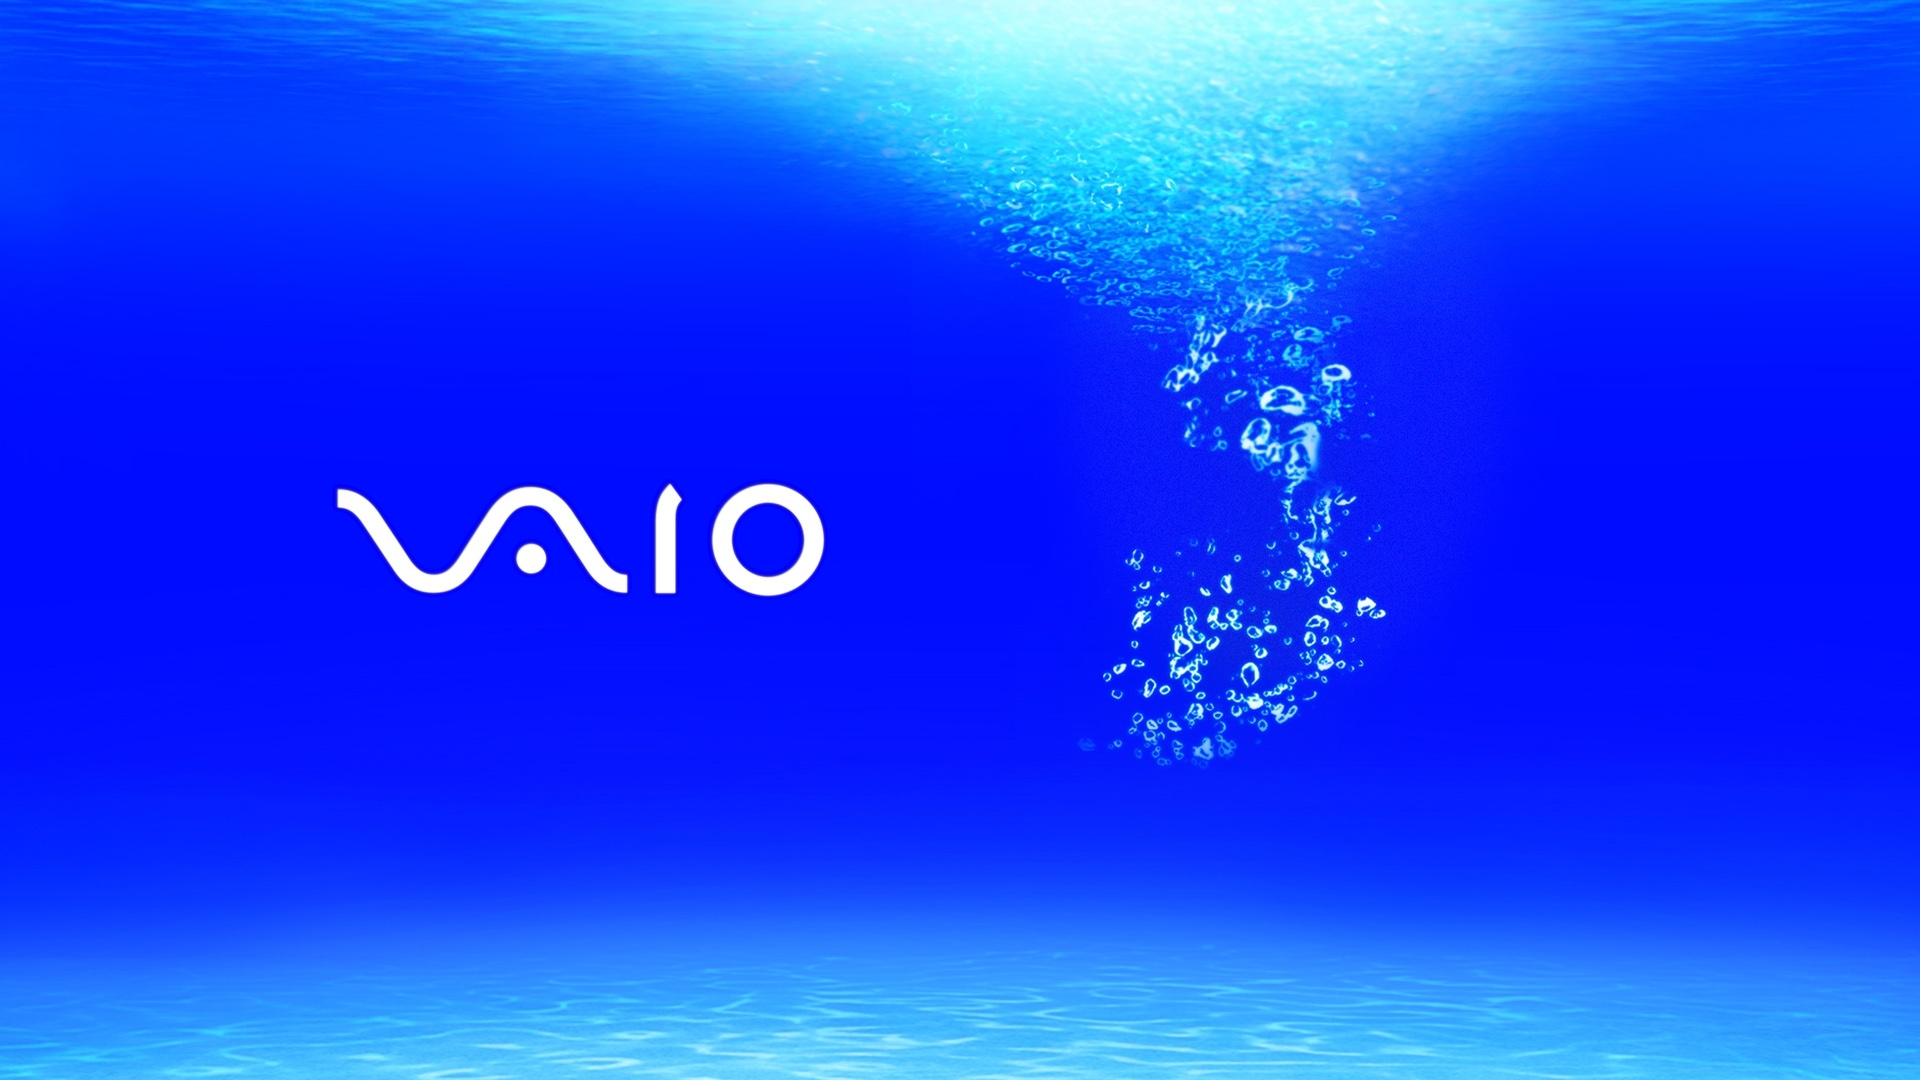 Sony Vaio Wallpaper 23304 on we love logos